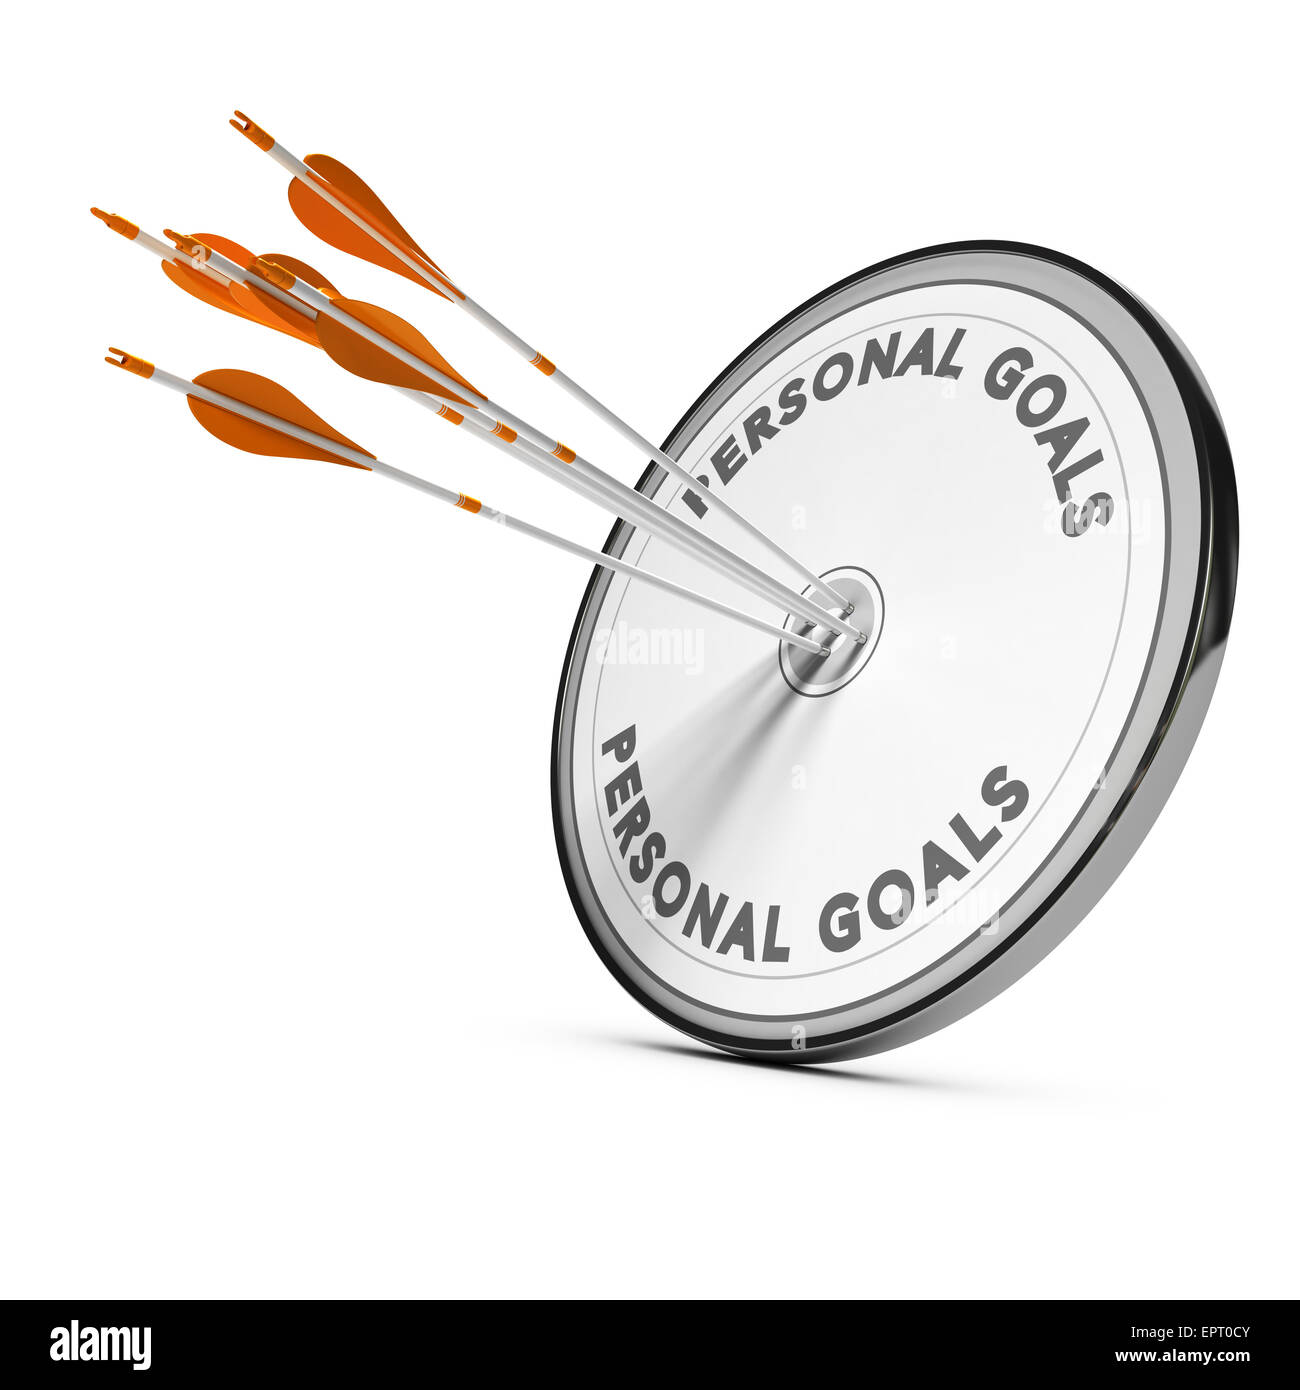 Many arrows hitting the same target, Concept image for business personnal goals or self confidence coaching. - Stock Image